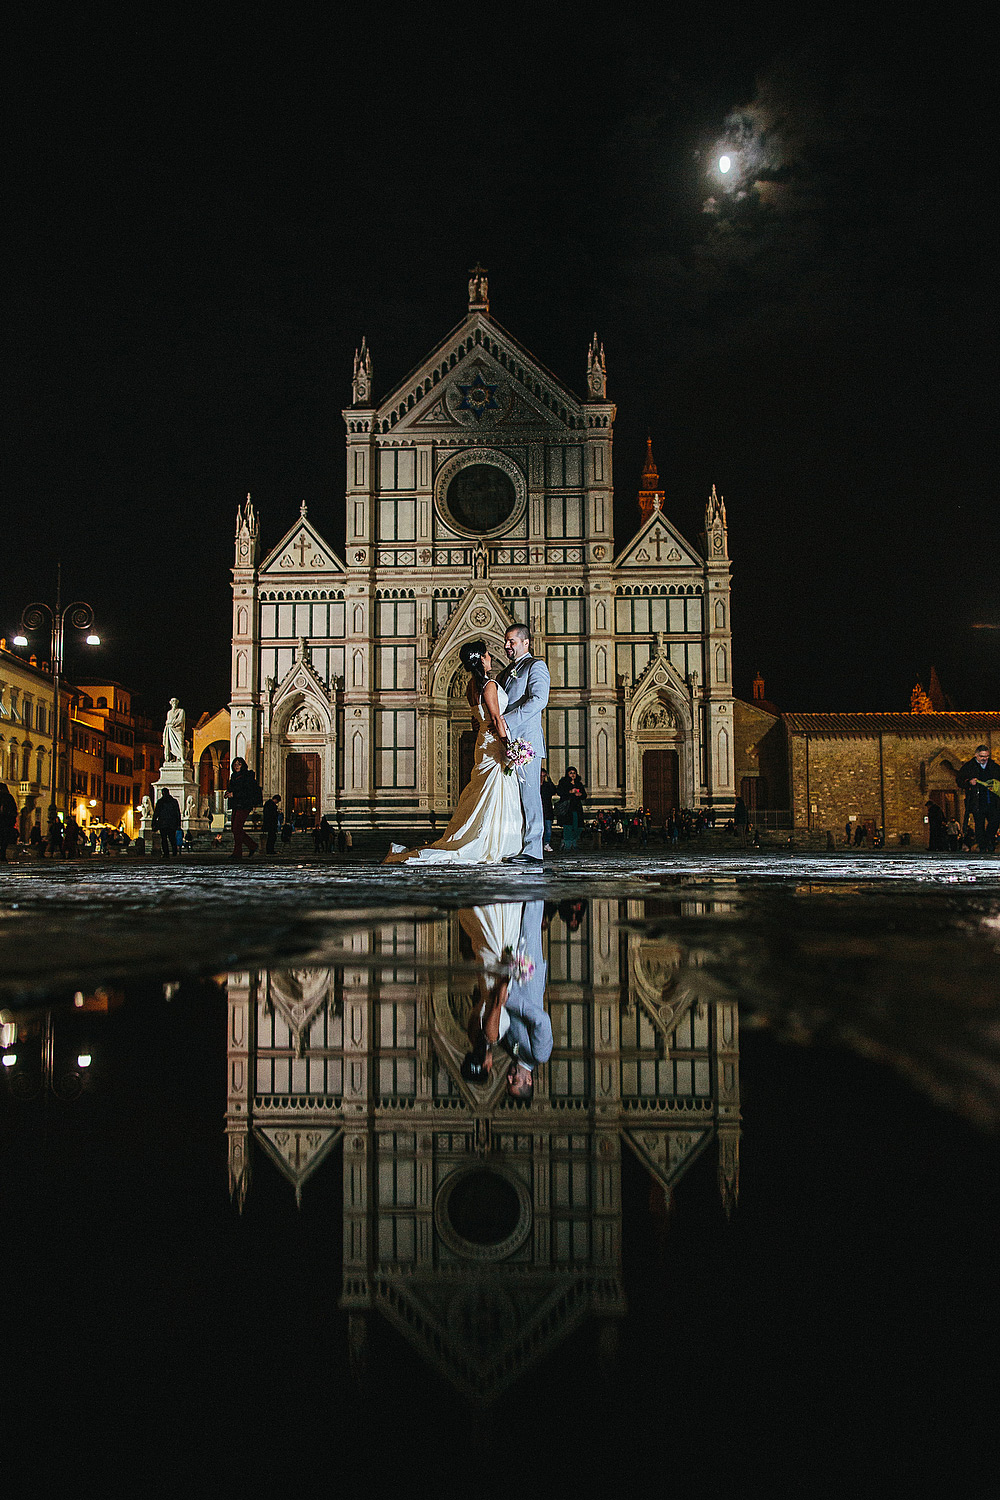 intimo matrimonio all'antica torre di via tornabuoni